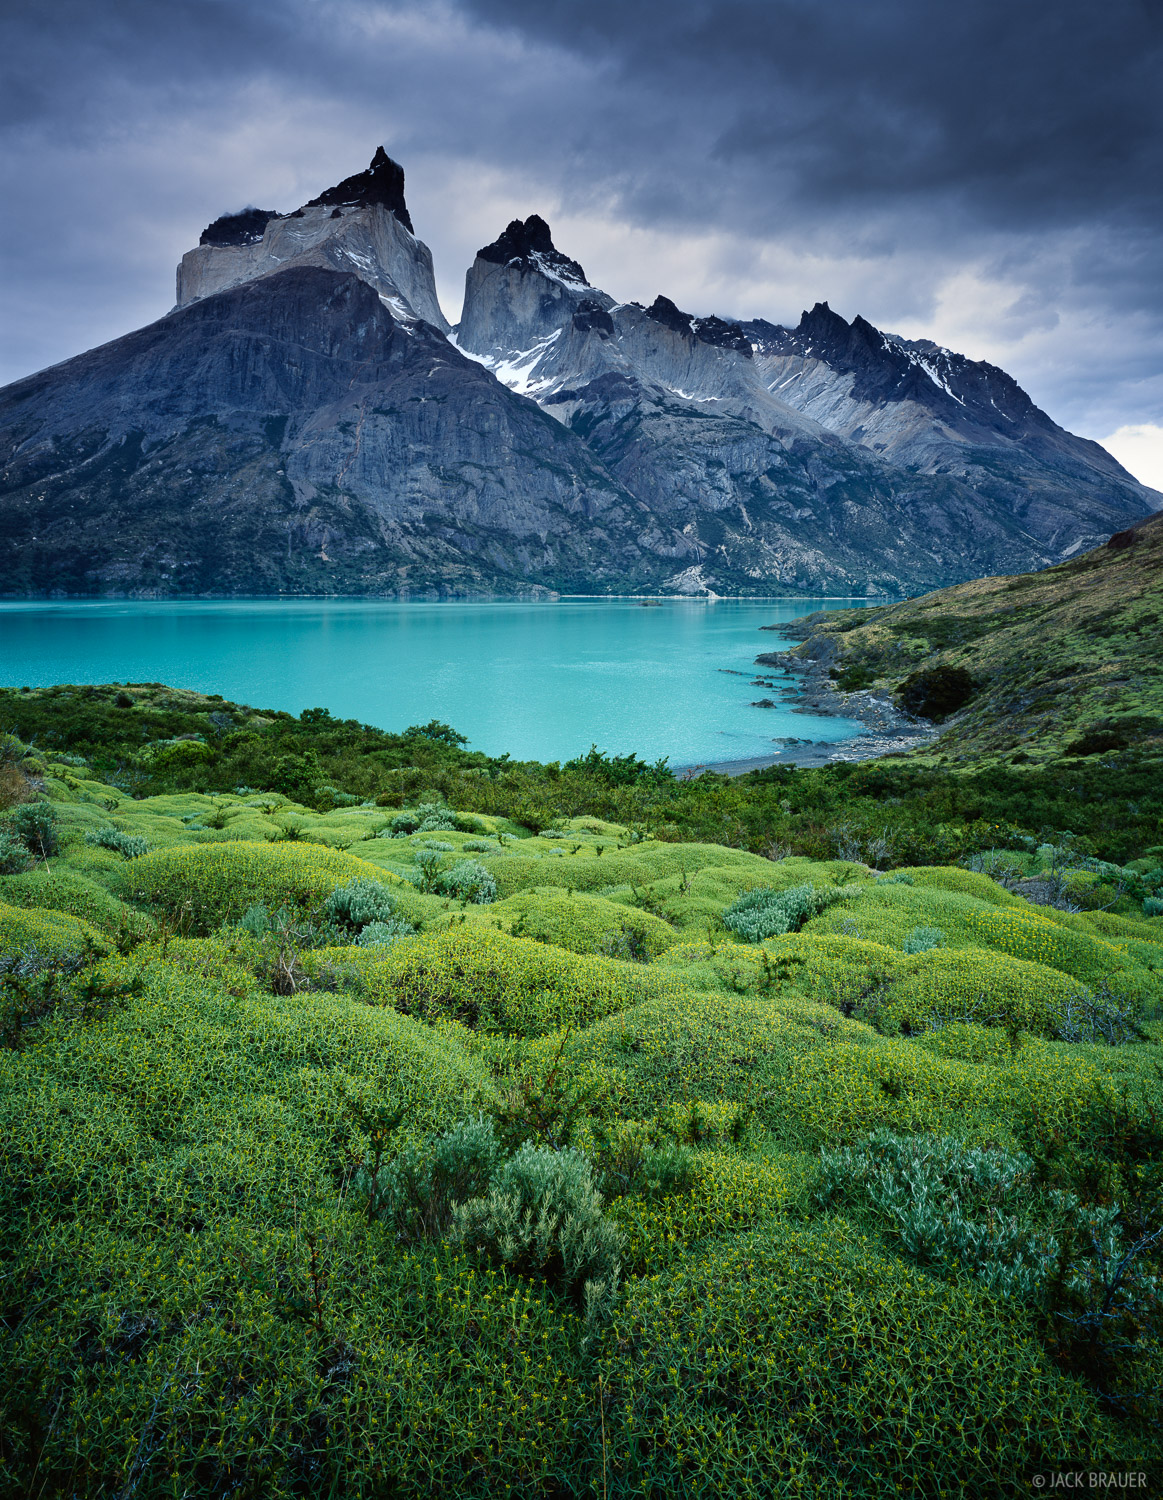 Cuernos del Paine, Lago Nordenskjold, Torres del Paine, Chile, Patagonia, photo